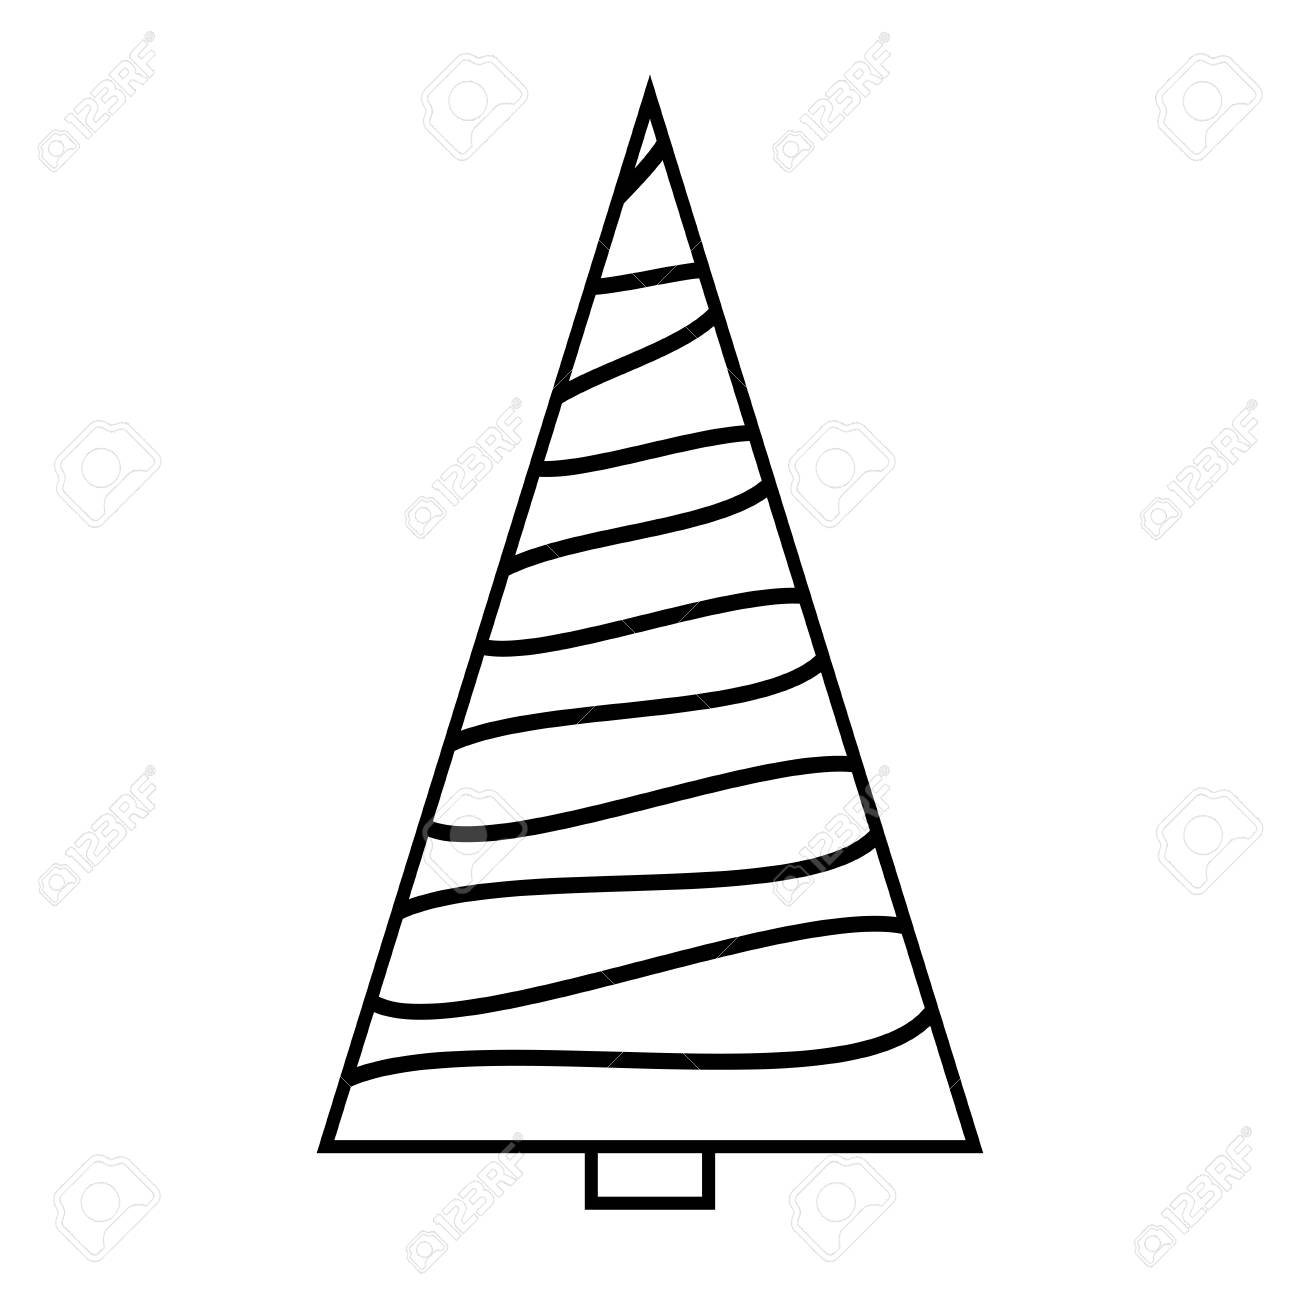 Christmas Tree Simple Outline Design On White Background Royalty Free Cliparts Vectors And Stock Illustration Image 91335265